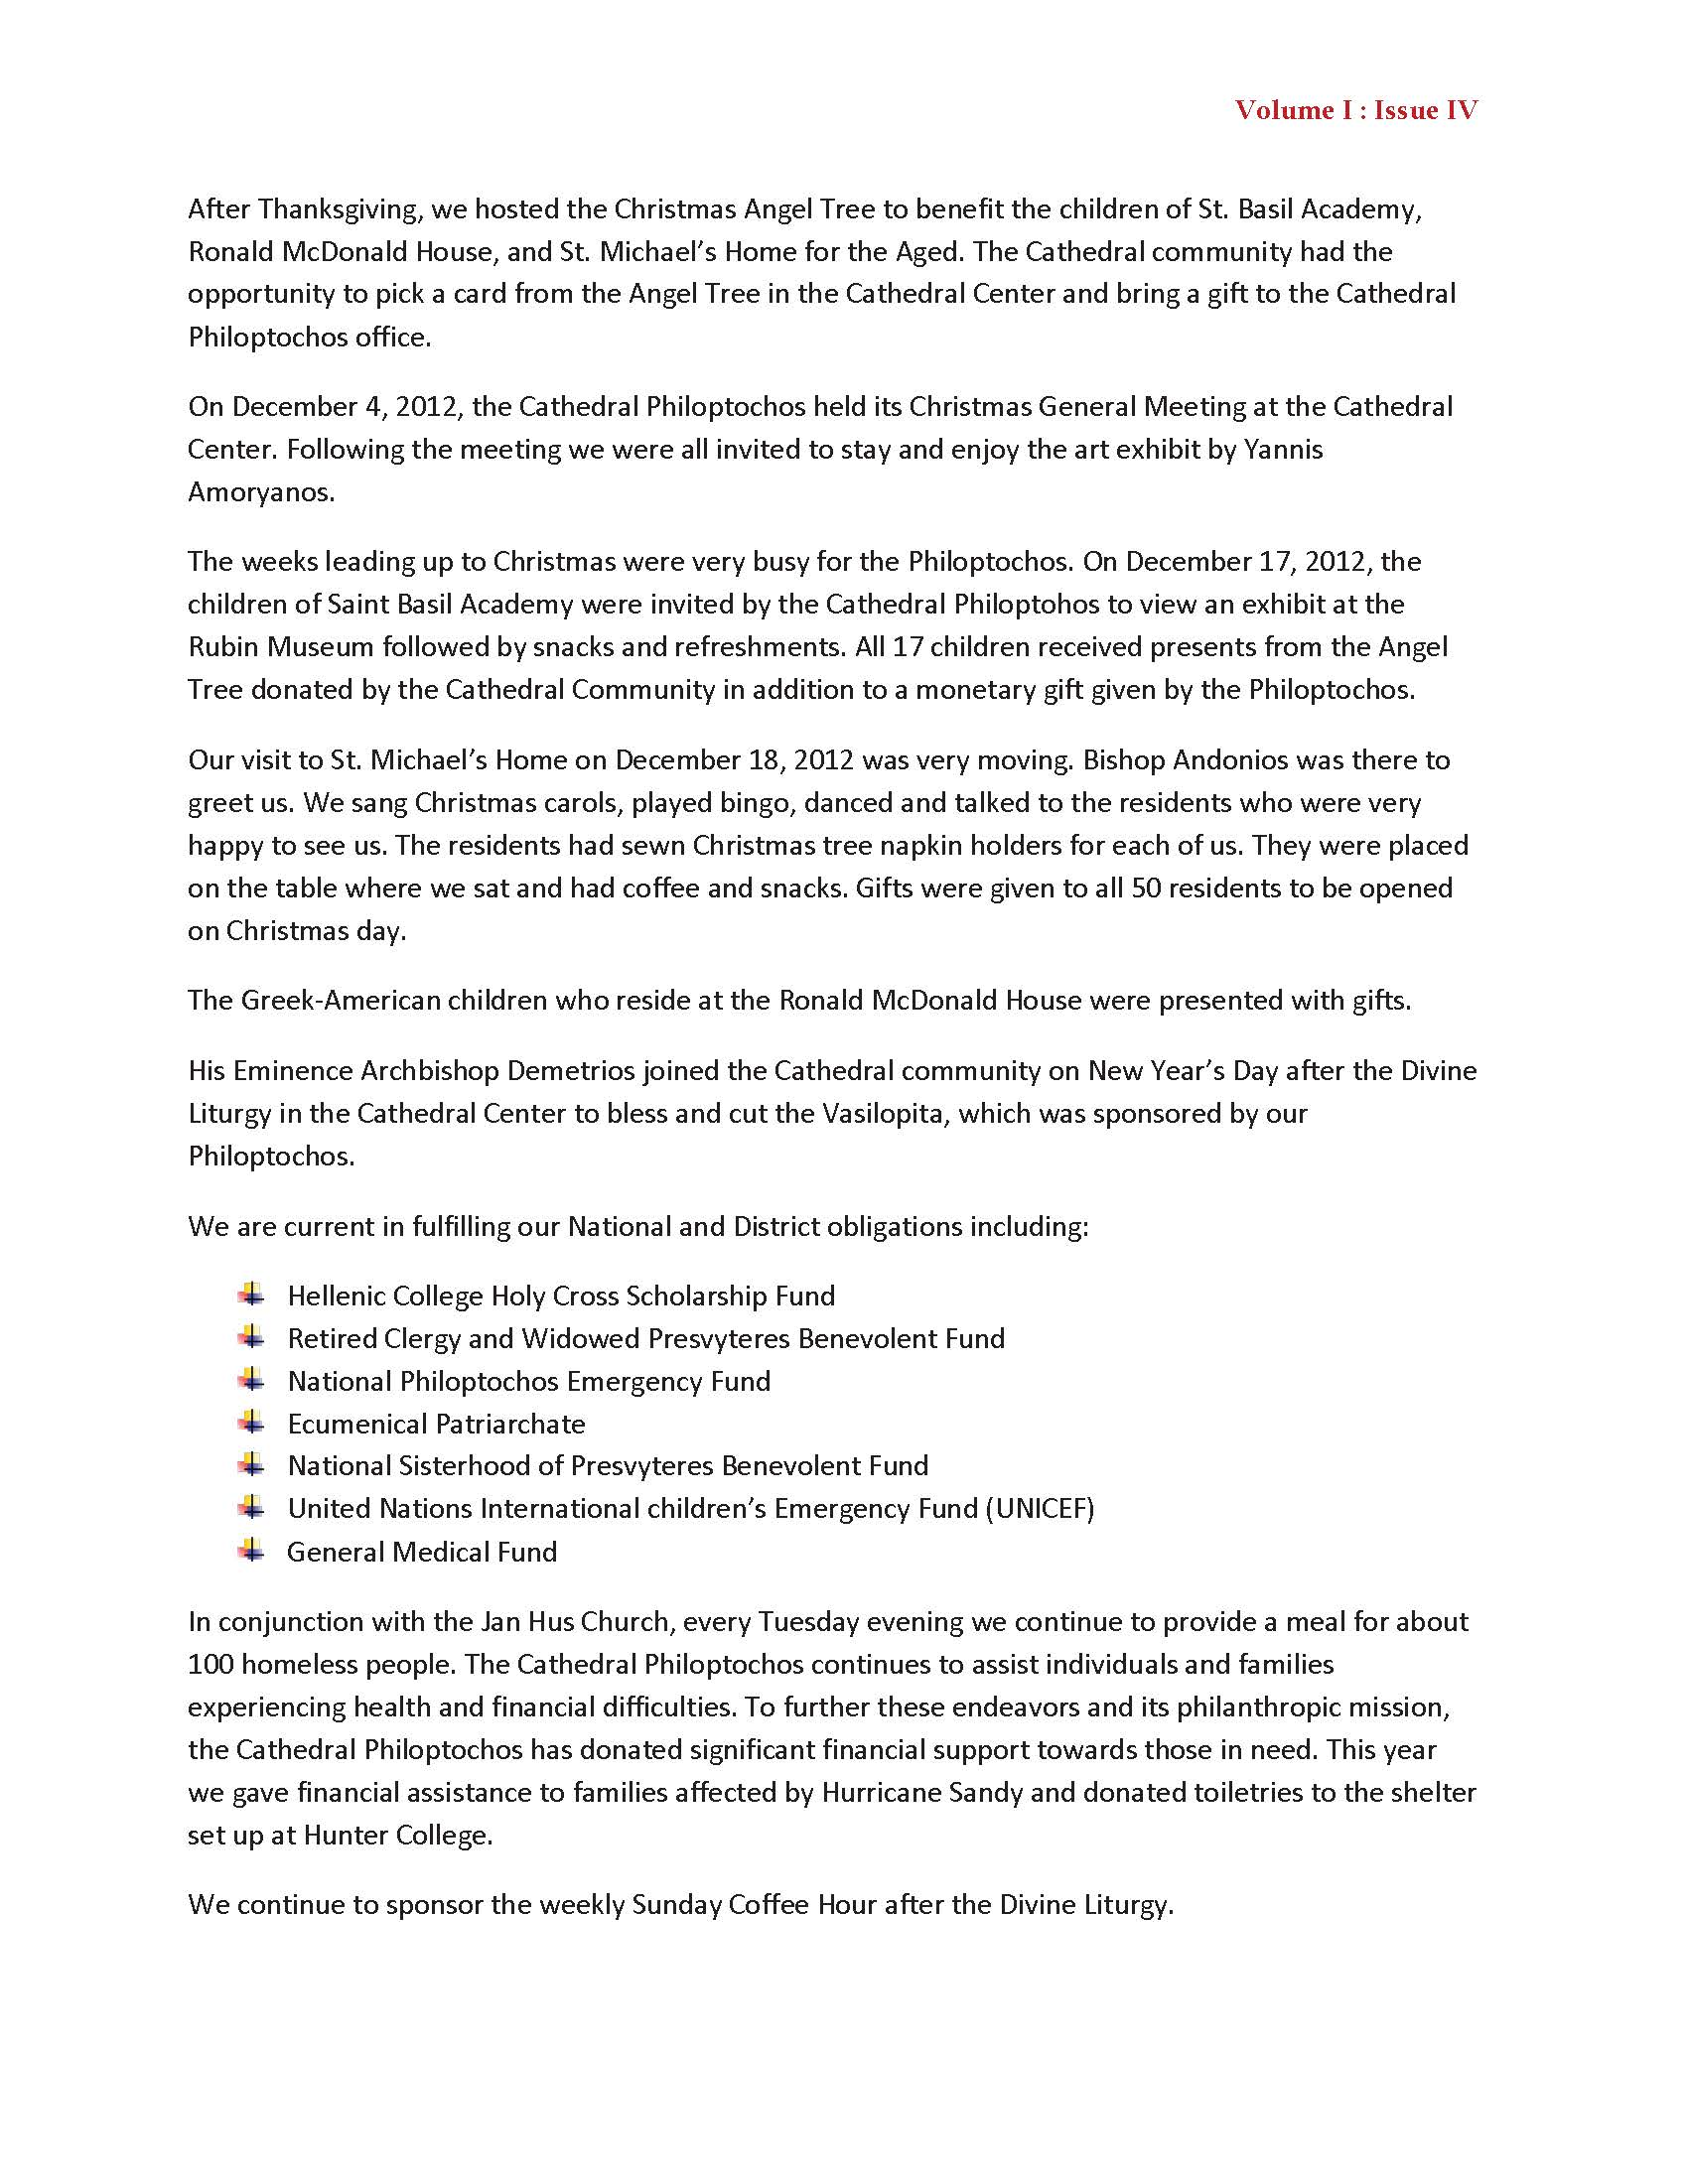 E - Fall 2012-Winter 2013 Newsletter_Page_2.jpg